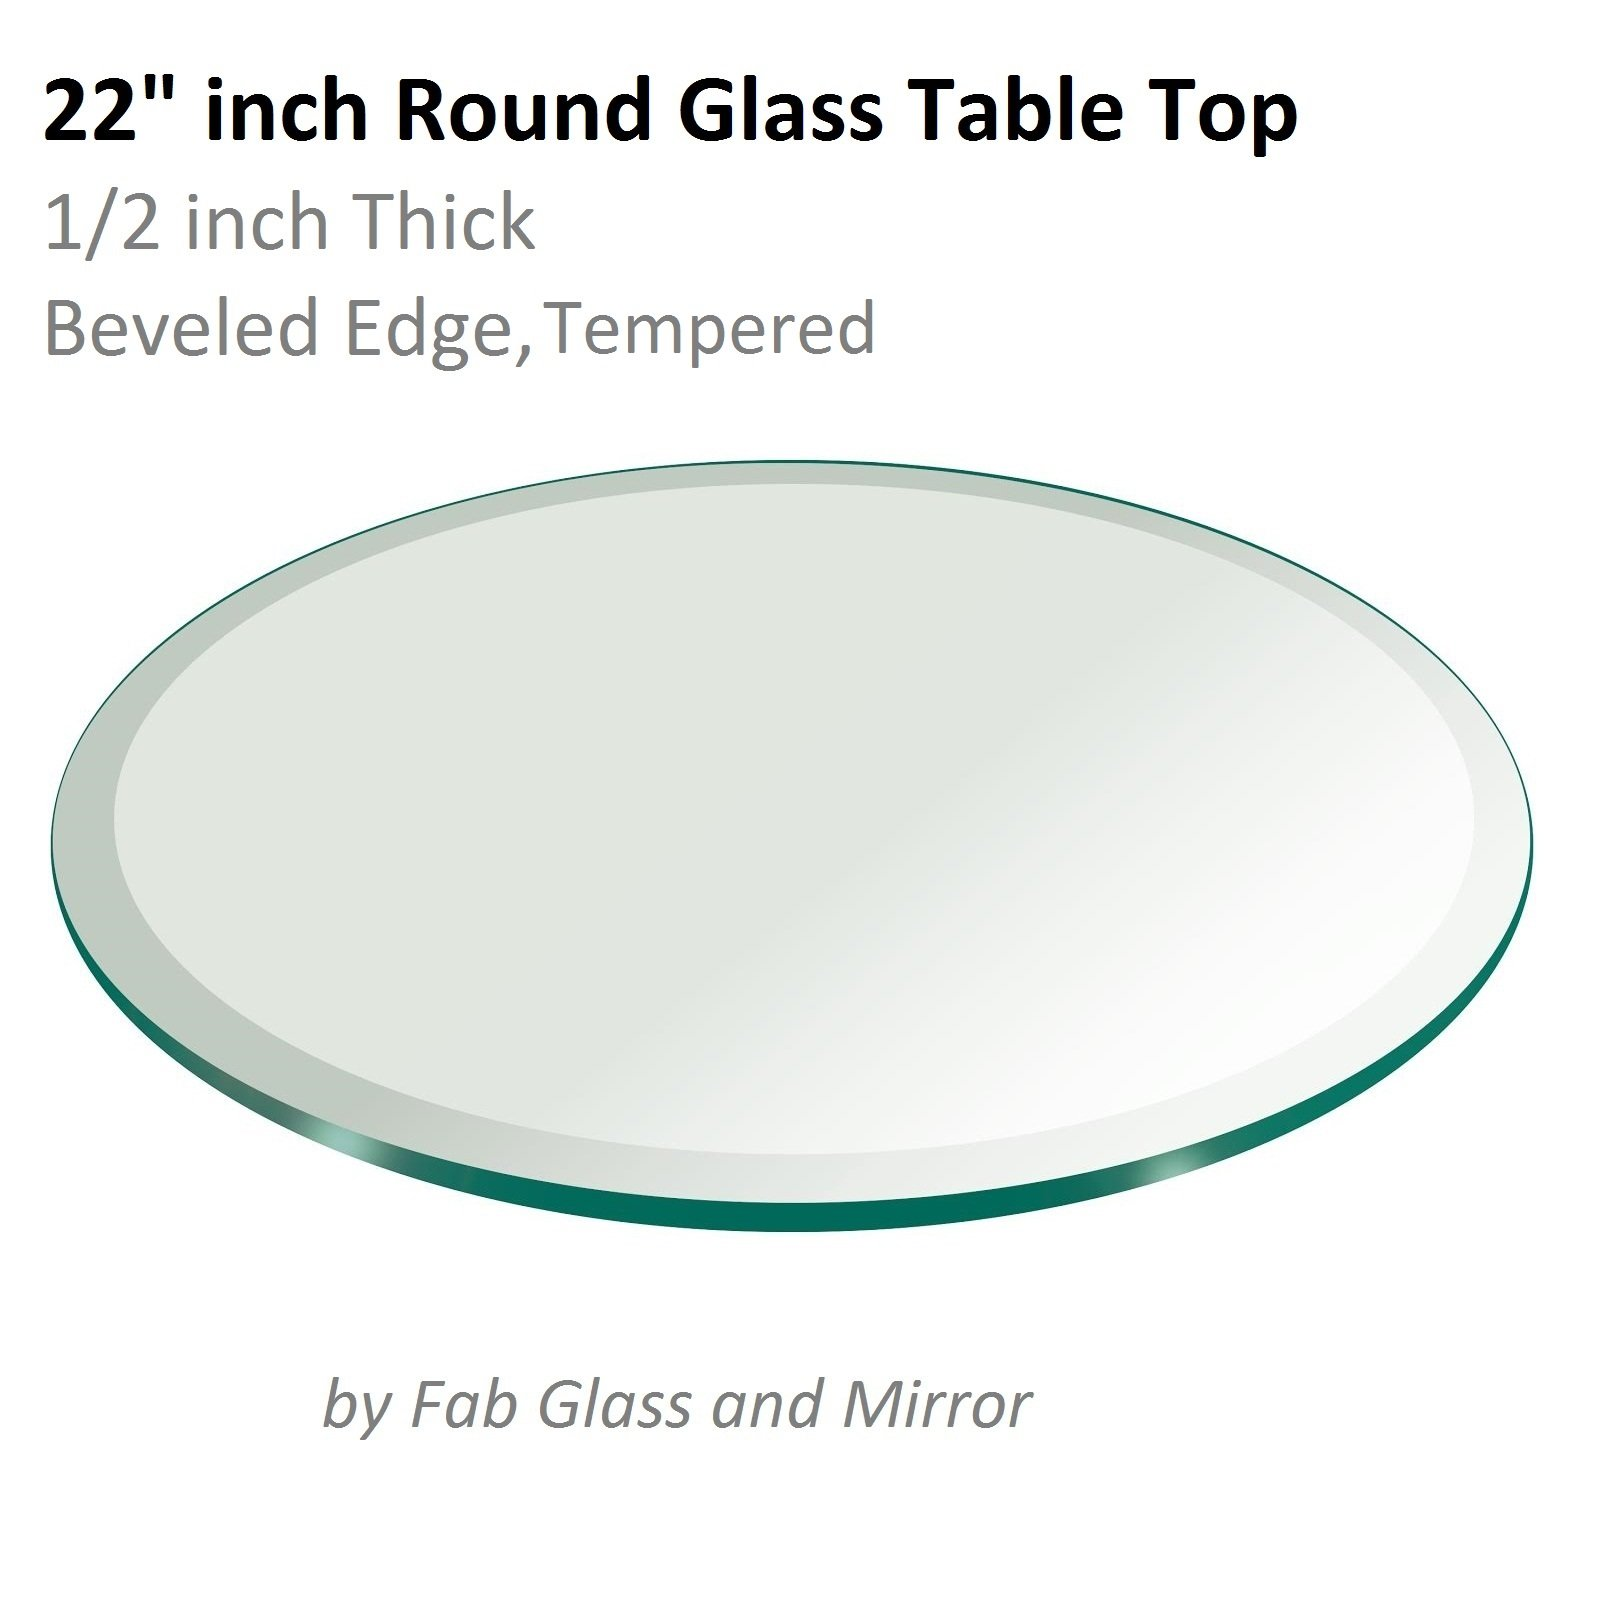 22'' Inch Round Glass Table Top 1/2'' Thick Tempered Beveled Edge by Fab Glass and Mirror